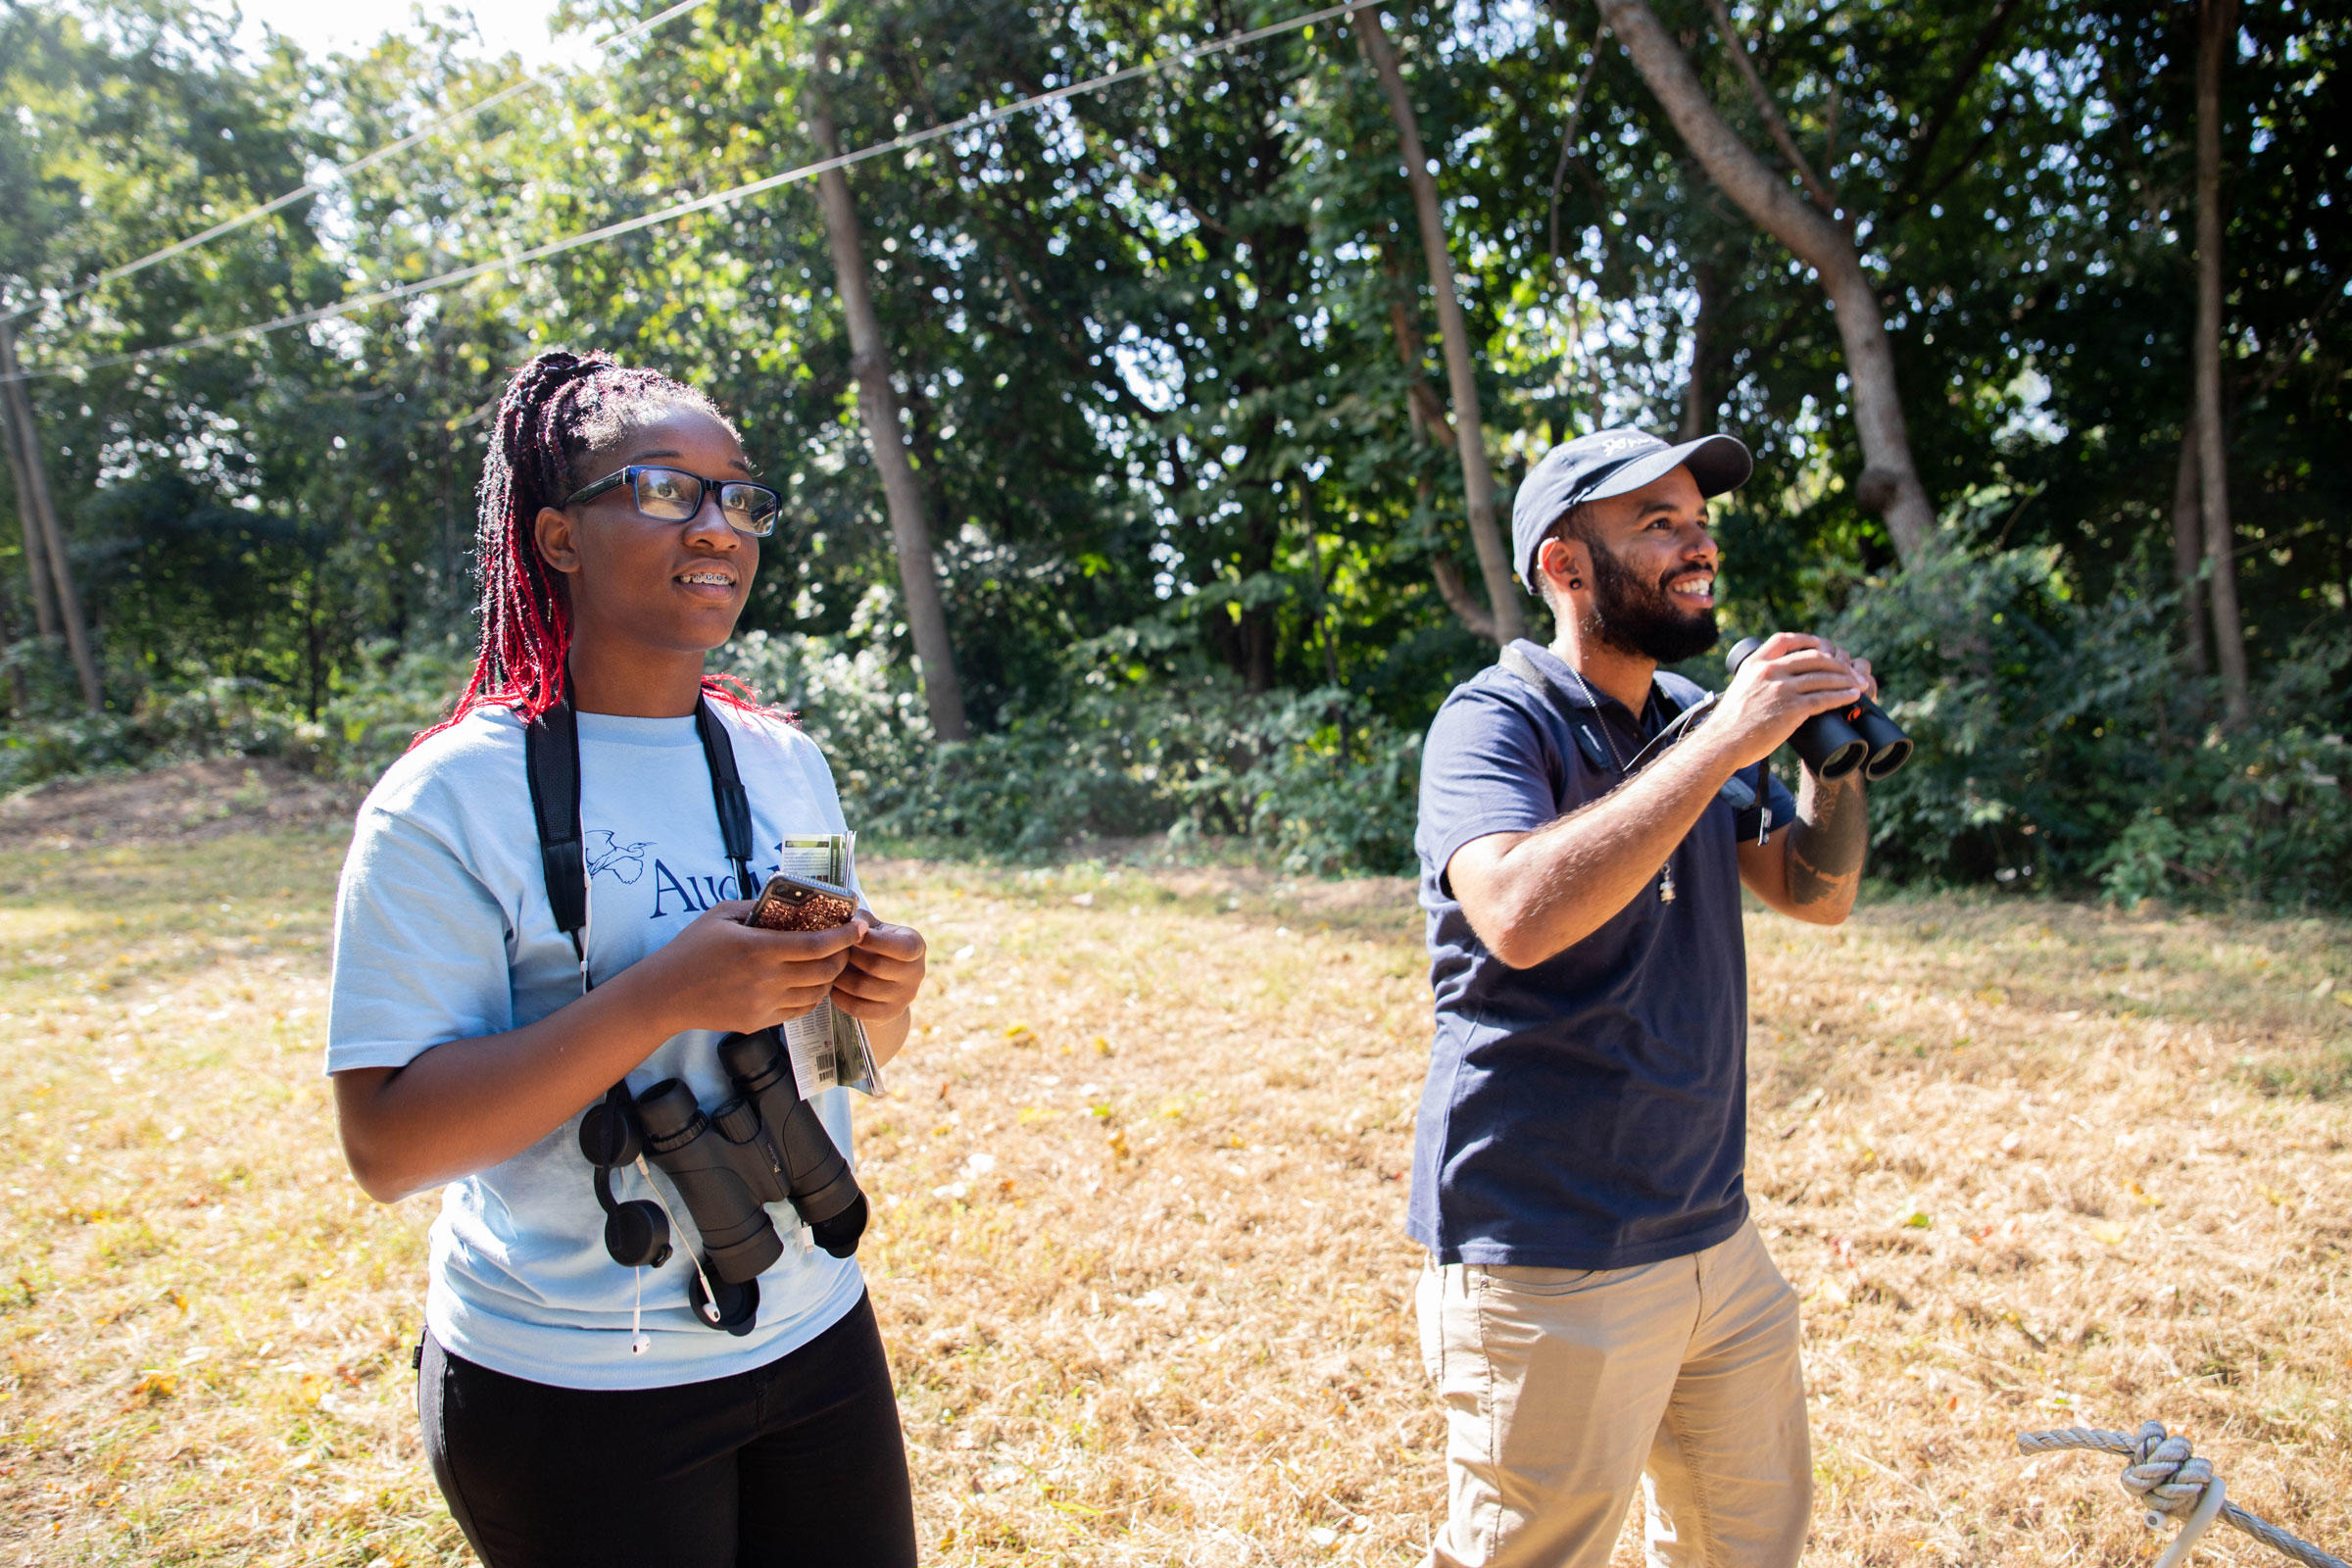 India Dancy (left), volunteer at the Discovery Center, teams up with Jose Santiago (right), Fund II Apprentice, during a friendly bird-off competition in Philadelphia. Dominic Arenas/Audubon